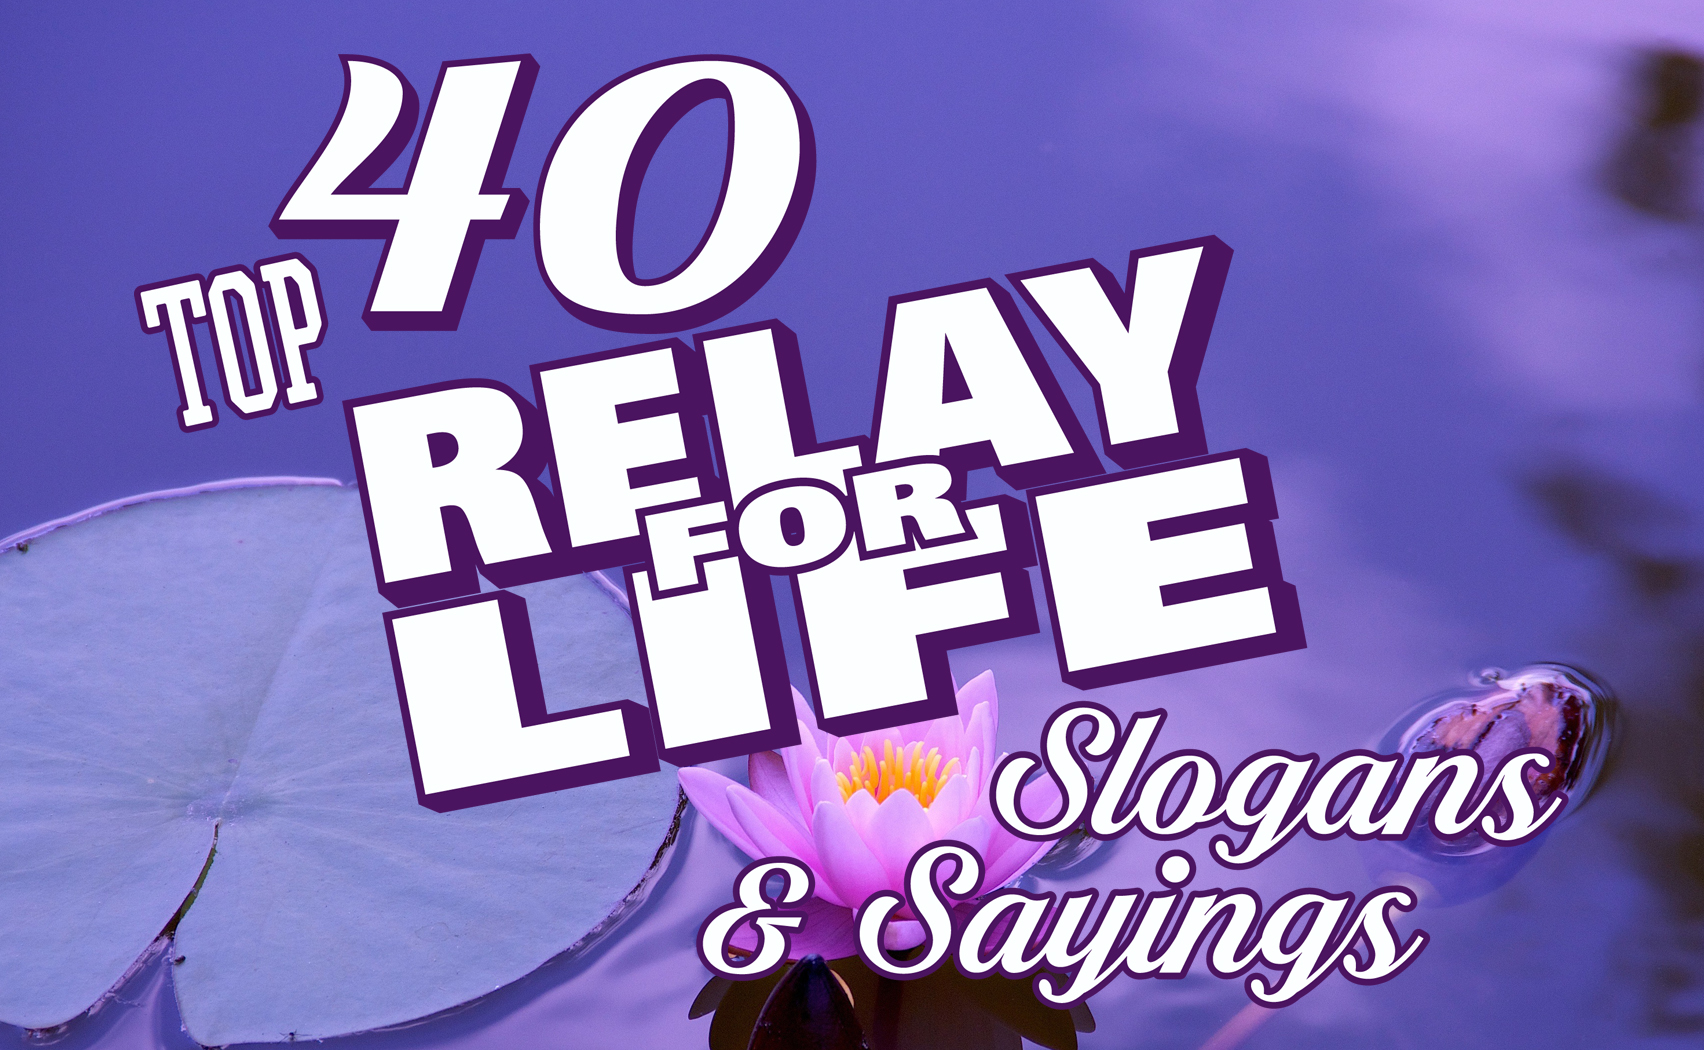 Relay For Life Quotes Iza Design Blog27 Great Senior Class Slogans And Quotes